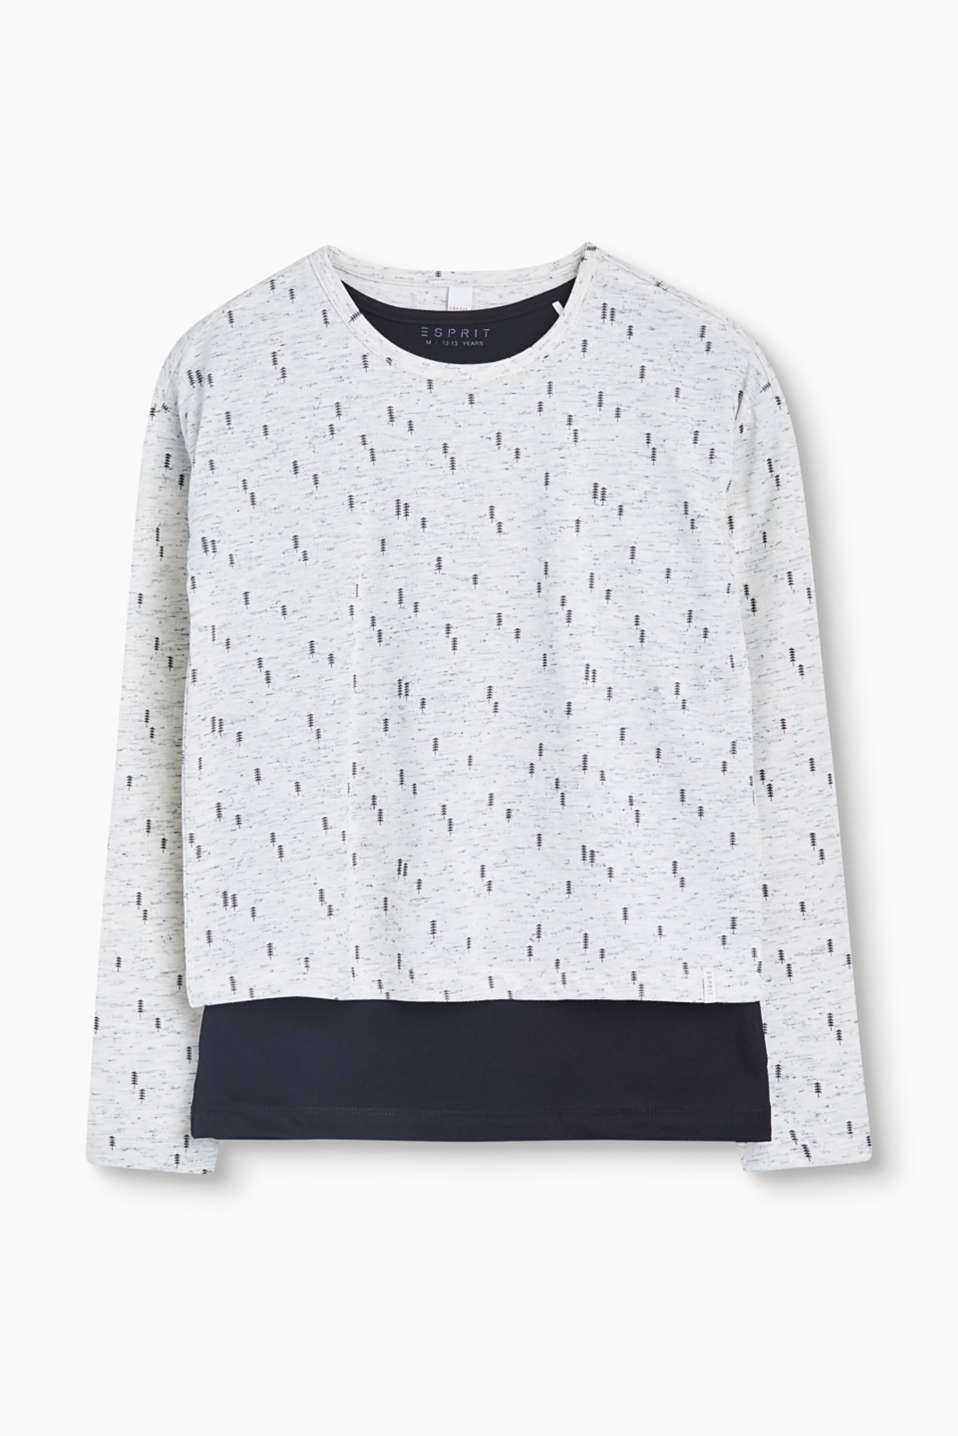 In a trendy layered look: Long sleeve top in printed slub jersey with a plain coloured cotton T-shirt.